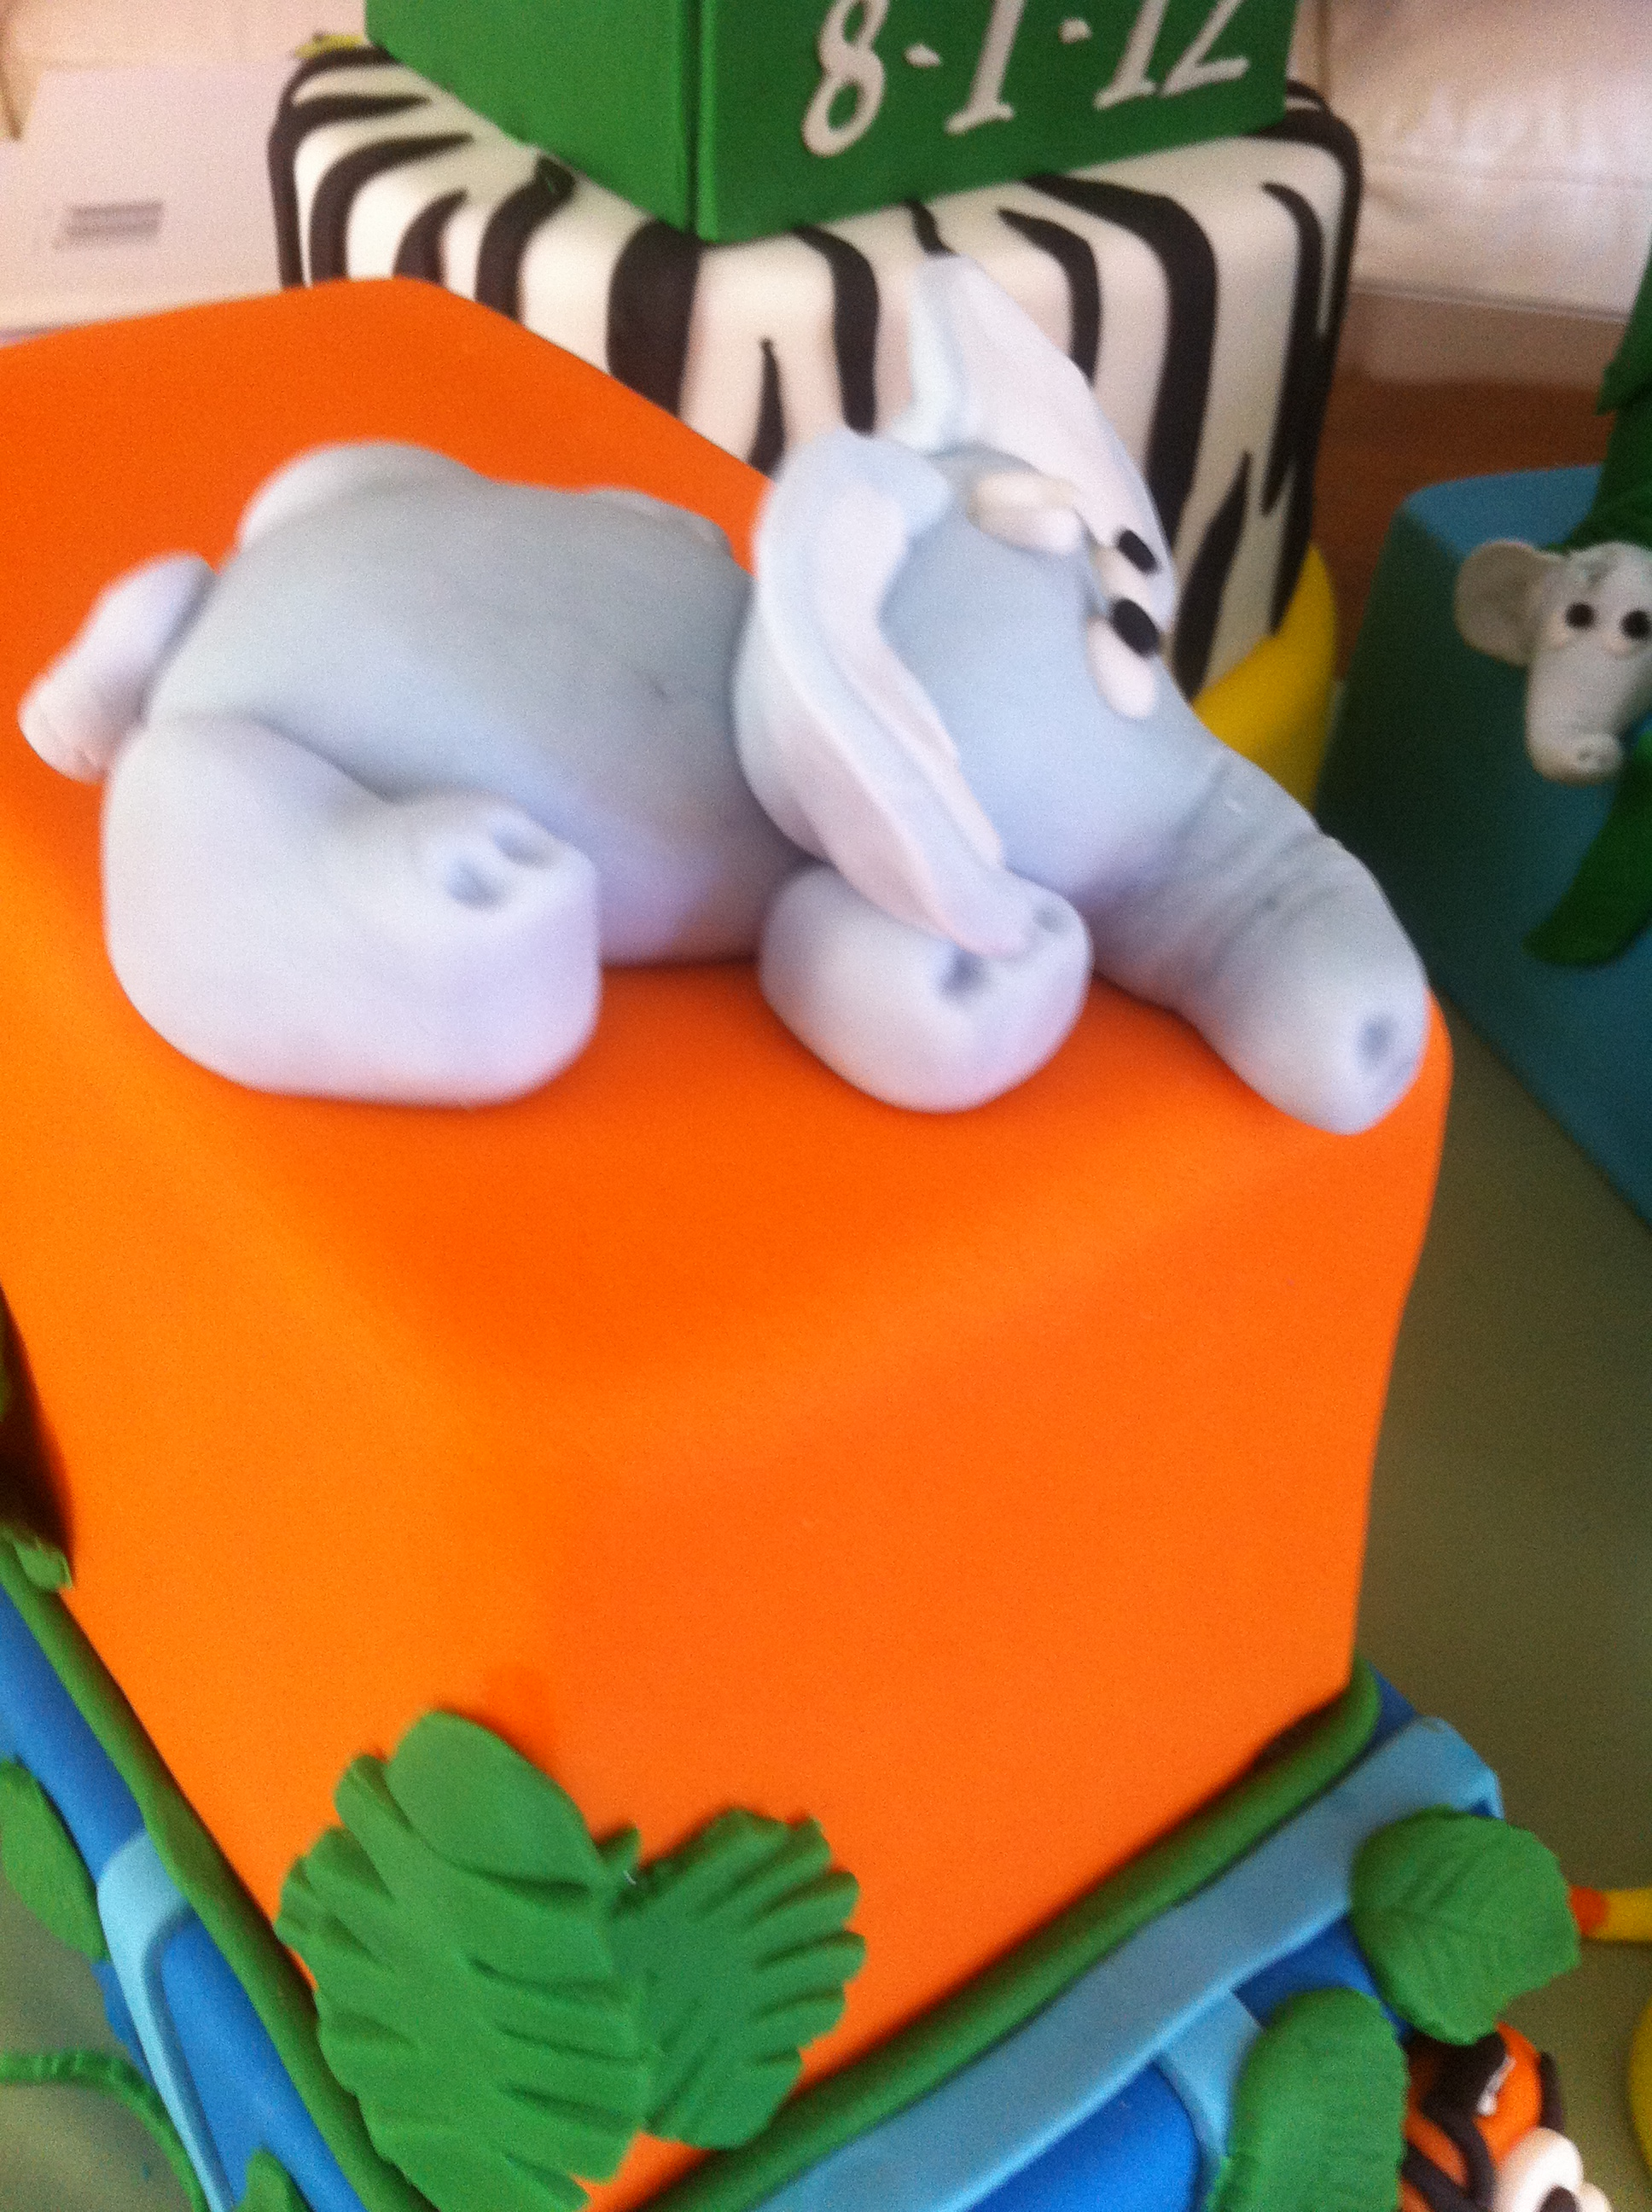 Crumbs Cake Art Facebook : Pin Posted By Cakeart At 11222008 014300 Am No Comments ...